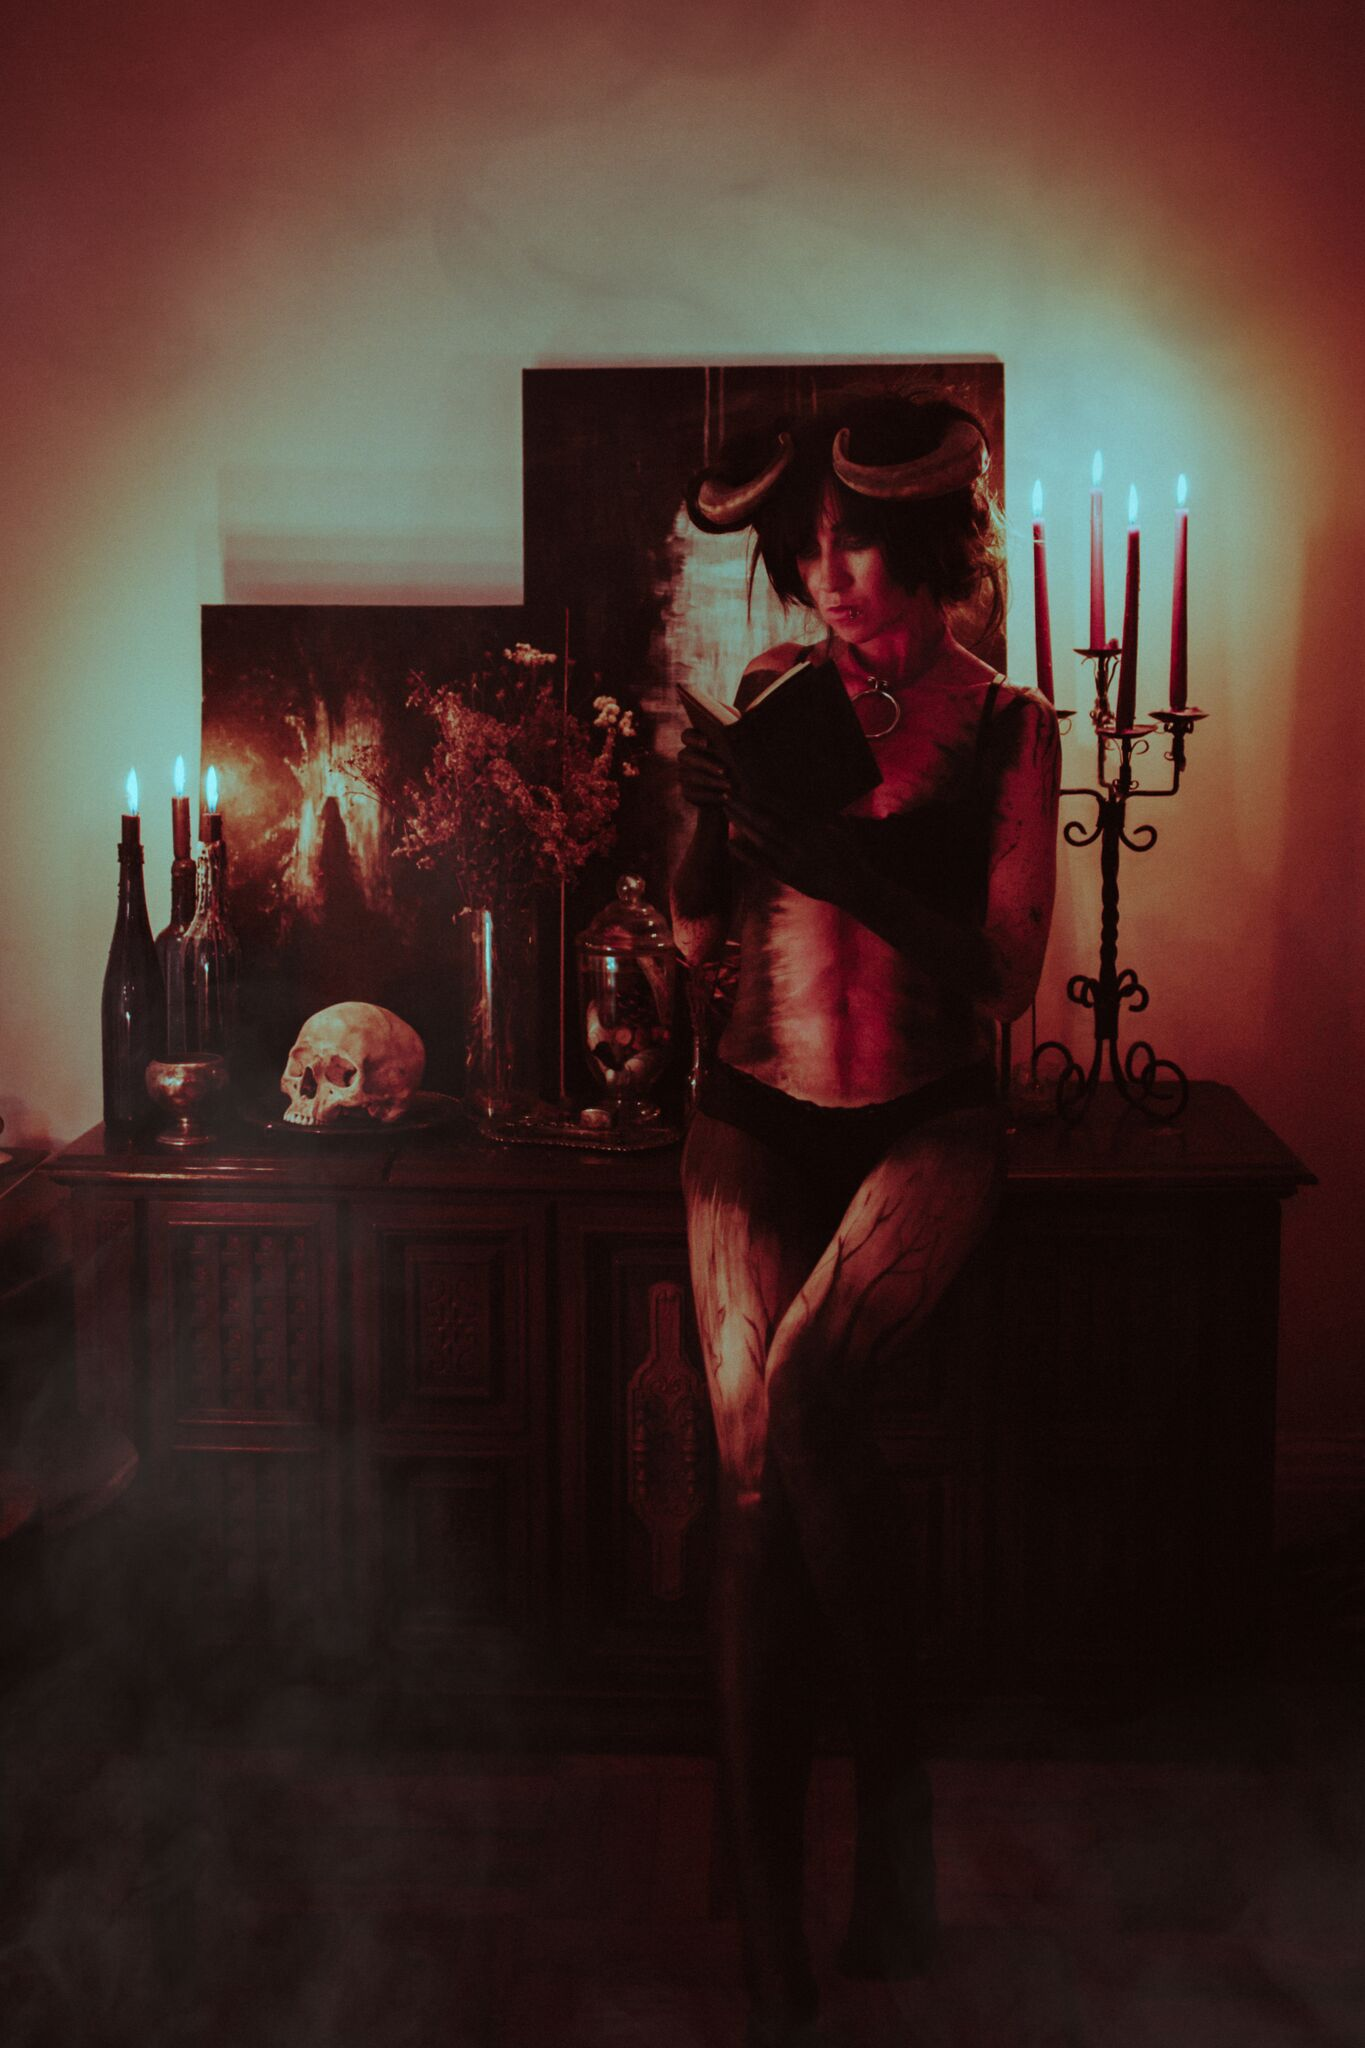 katrin-albert-photography-mccal-strange-halloween-selects-highres-20_preview.jpeg